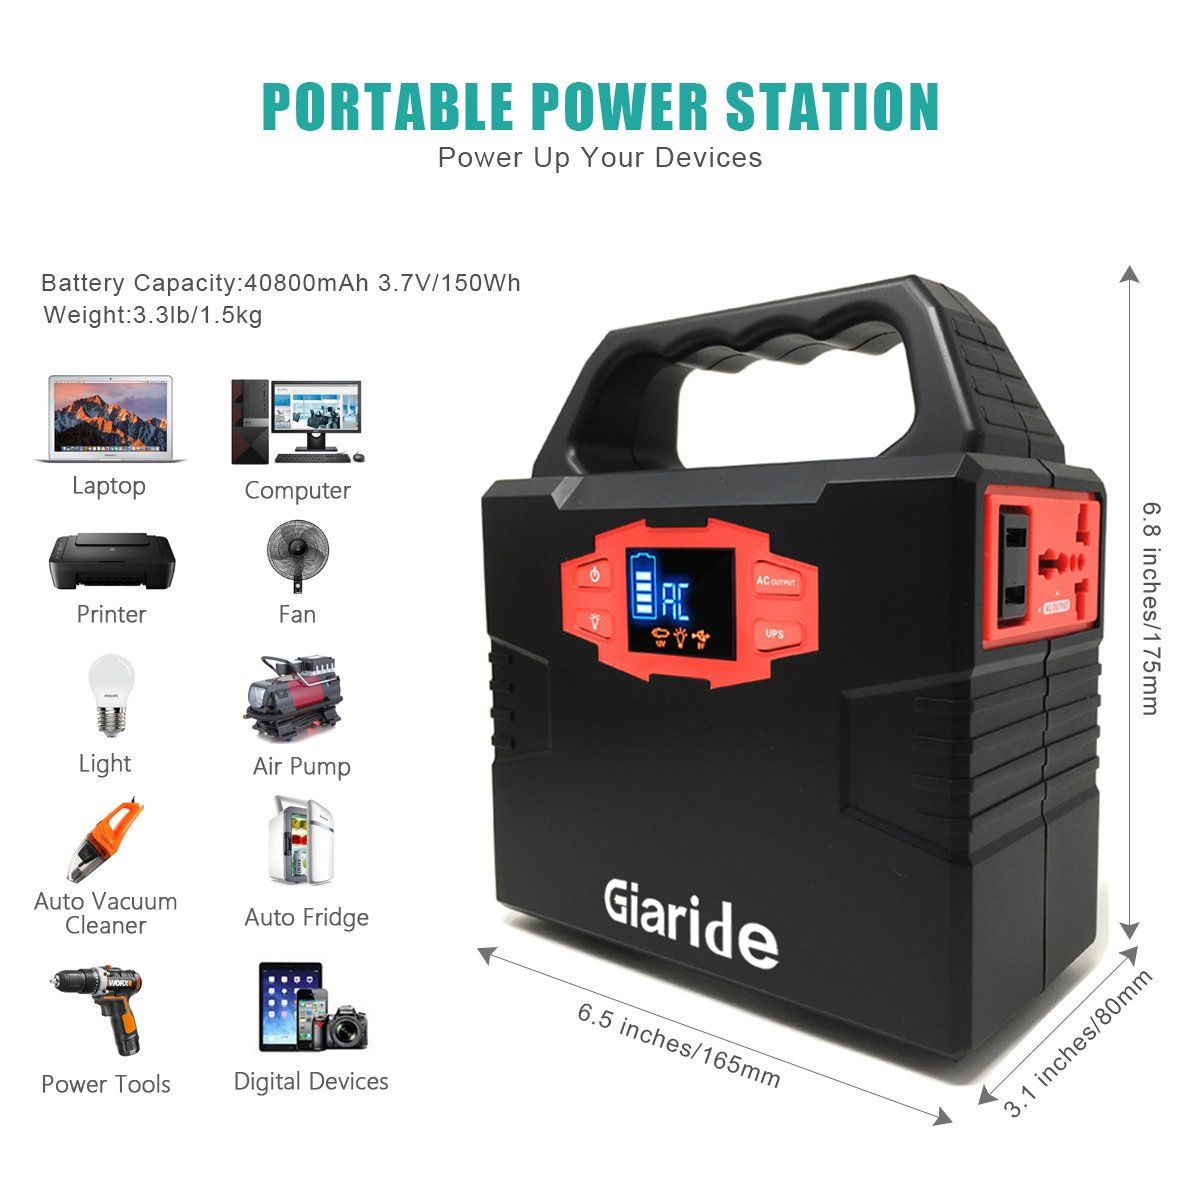 Charged by Solar Panel//Wall Outlet//Car Dual 110V AC Outlet 3 DC 12V Giaride 150Wh Solar Power Inverter 40800mAh Battery Pack Camping CPAP Emergency UPS Power Station 2USB Ports Portable Generator